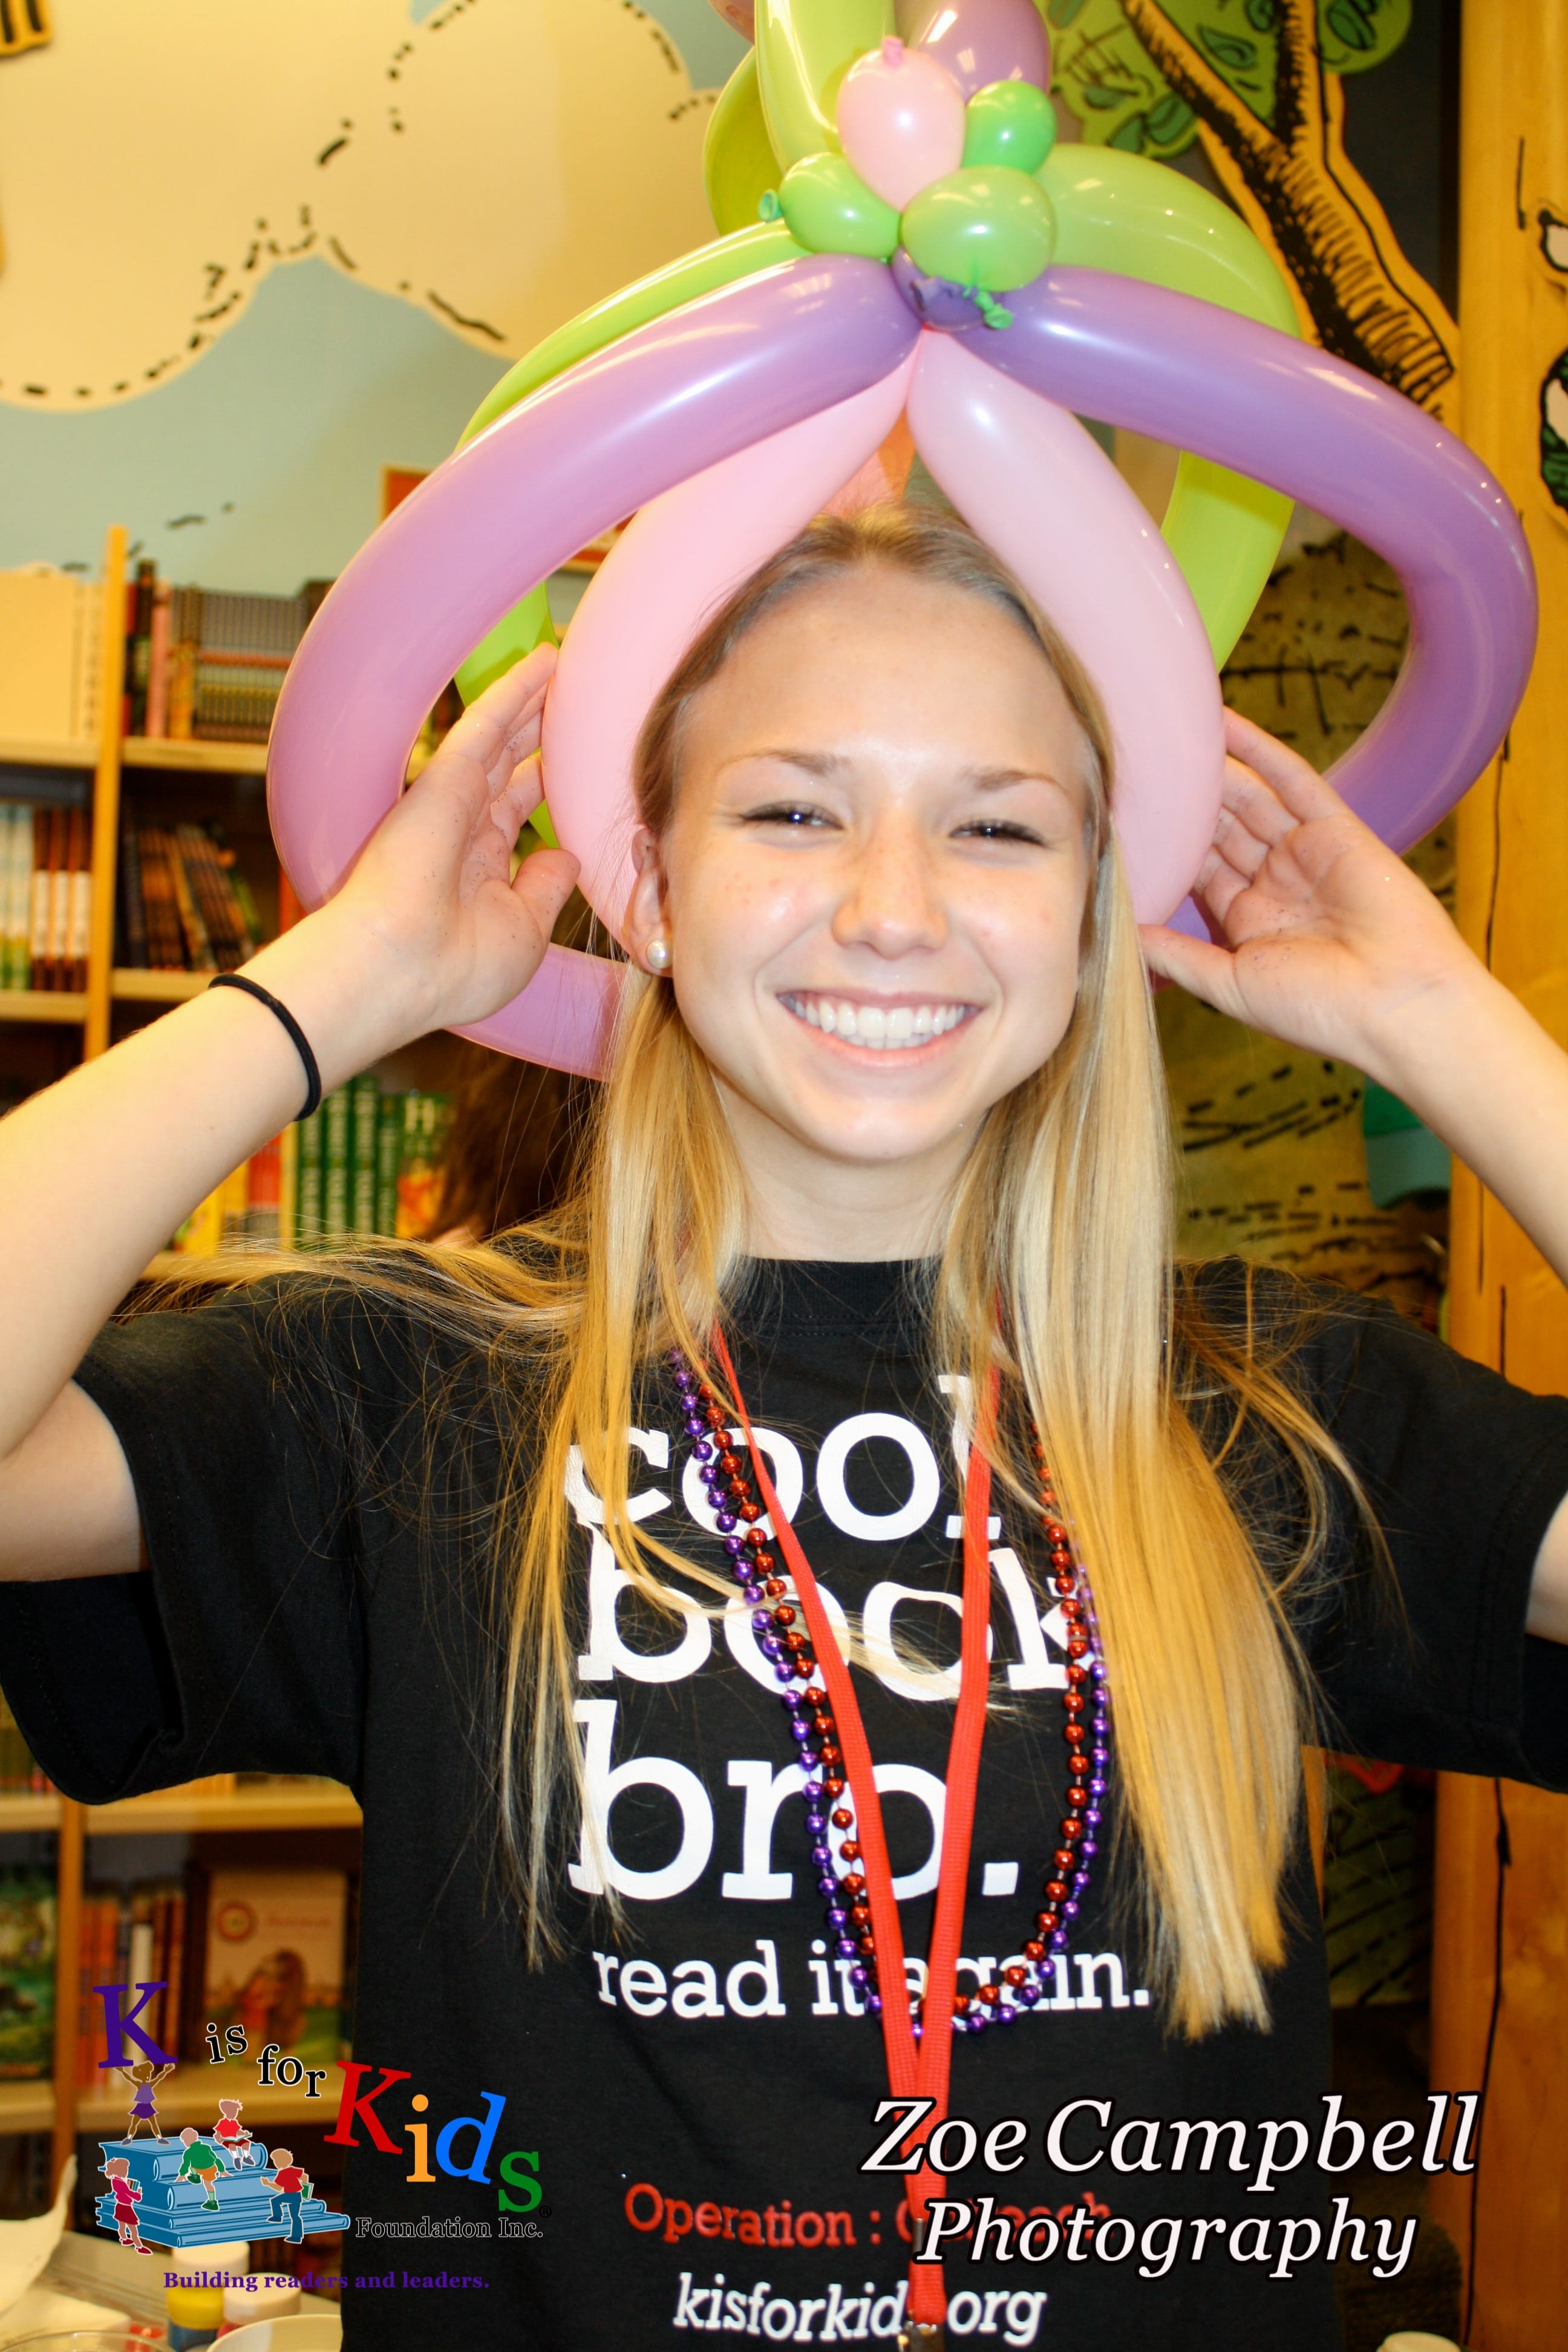 Kids Authors Amp Books Teens Doing Good Things At 6th